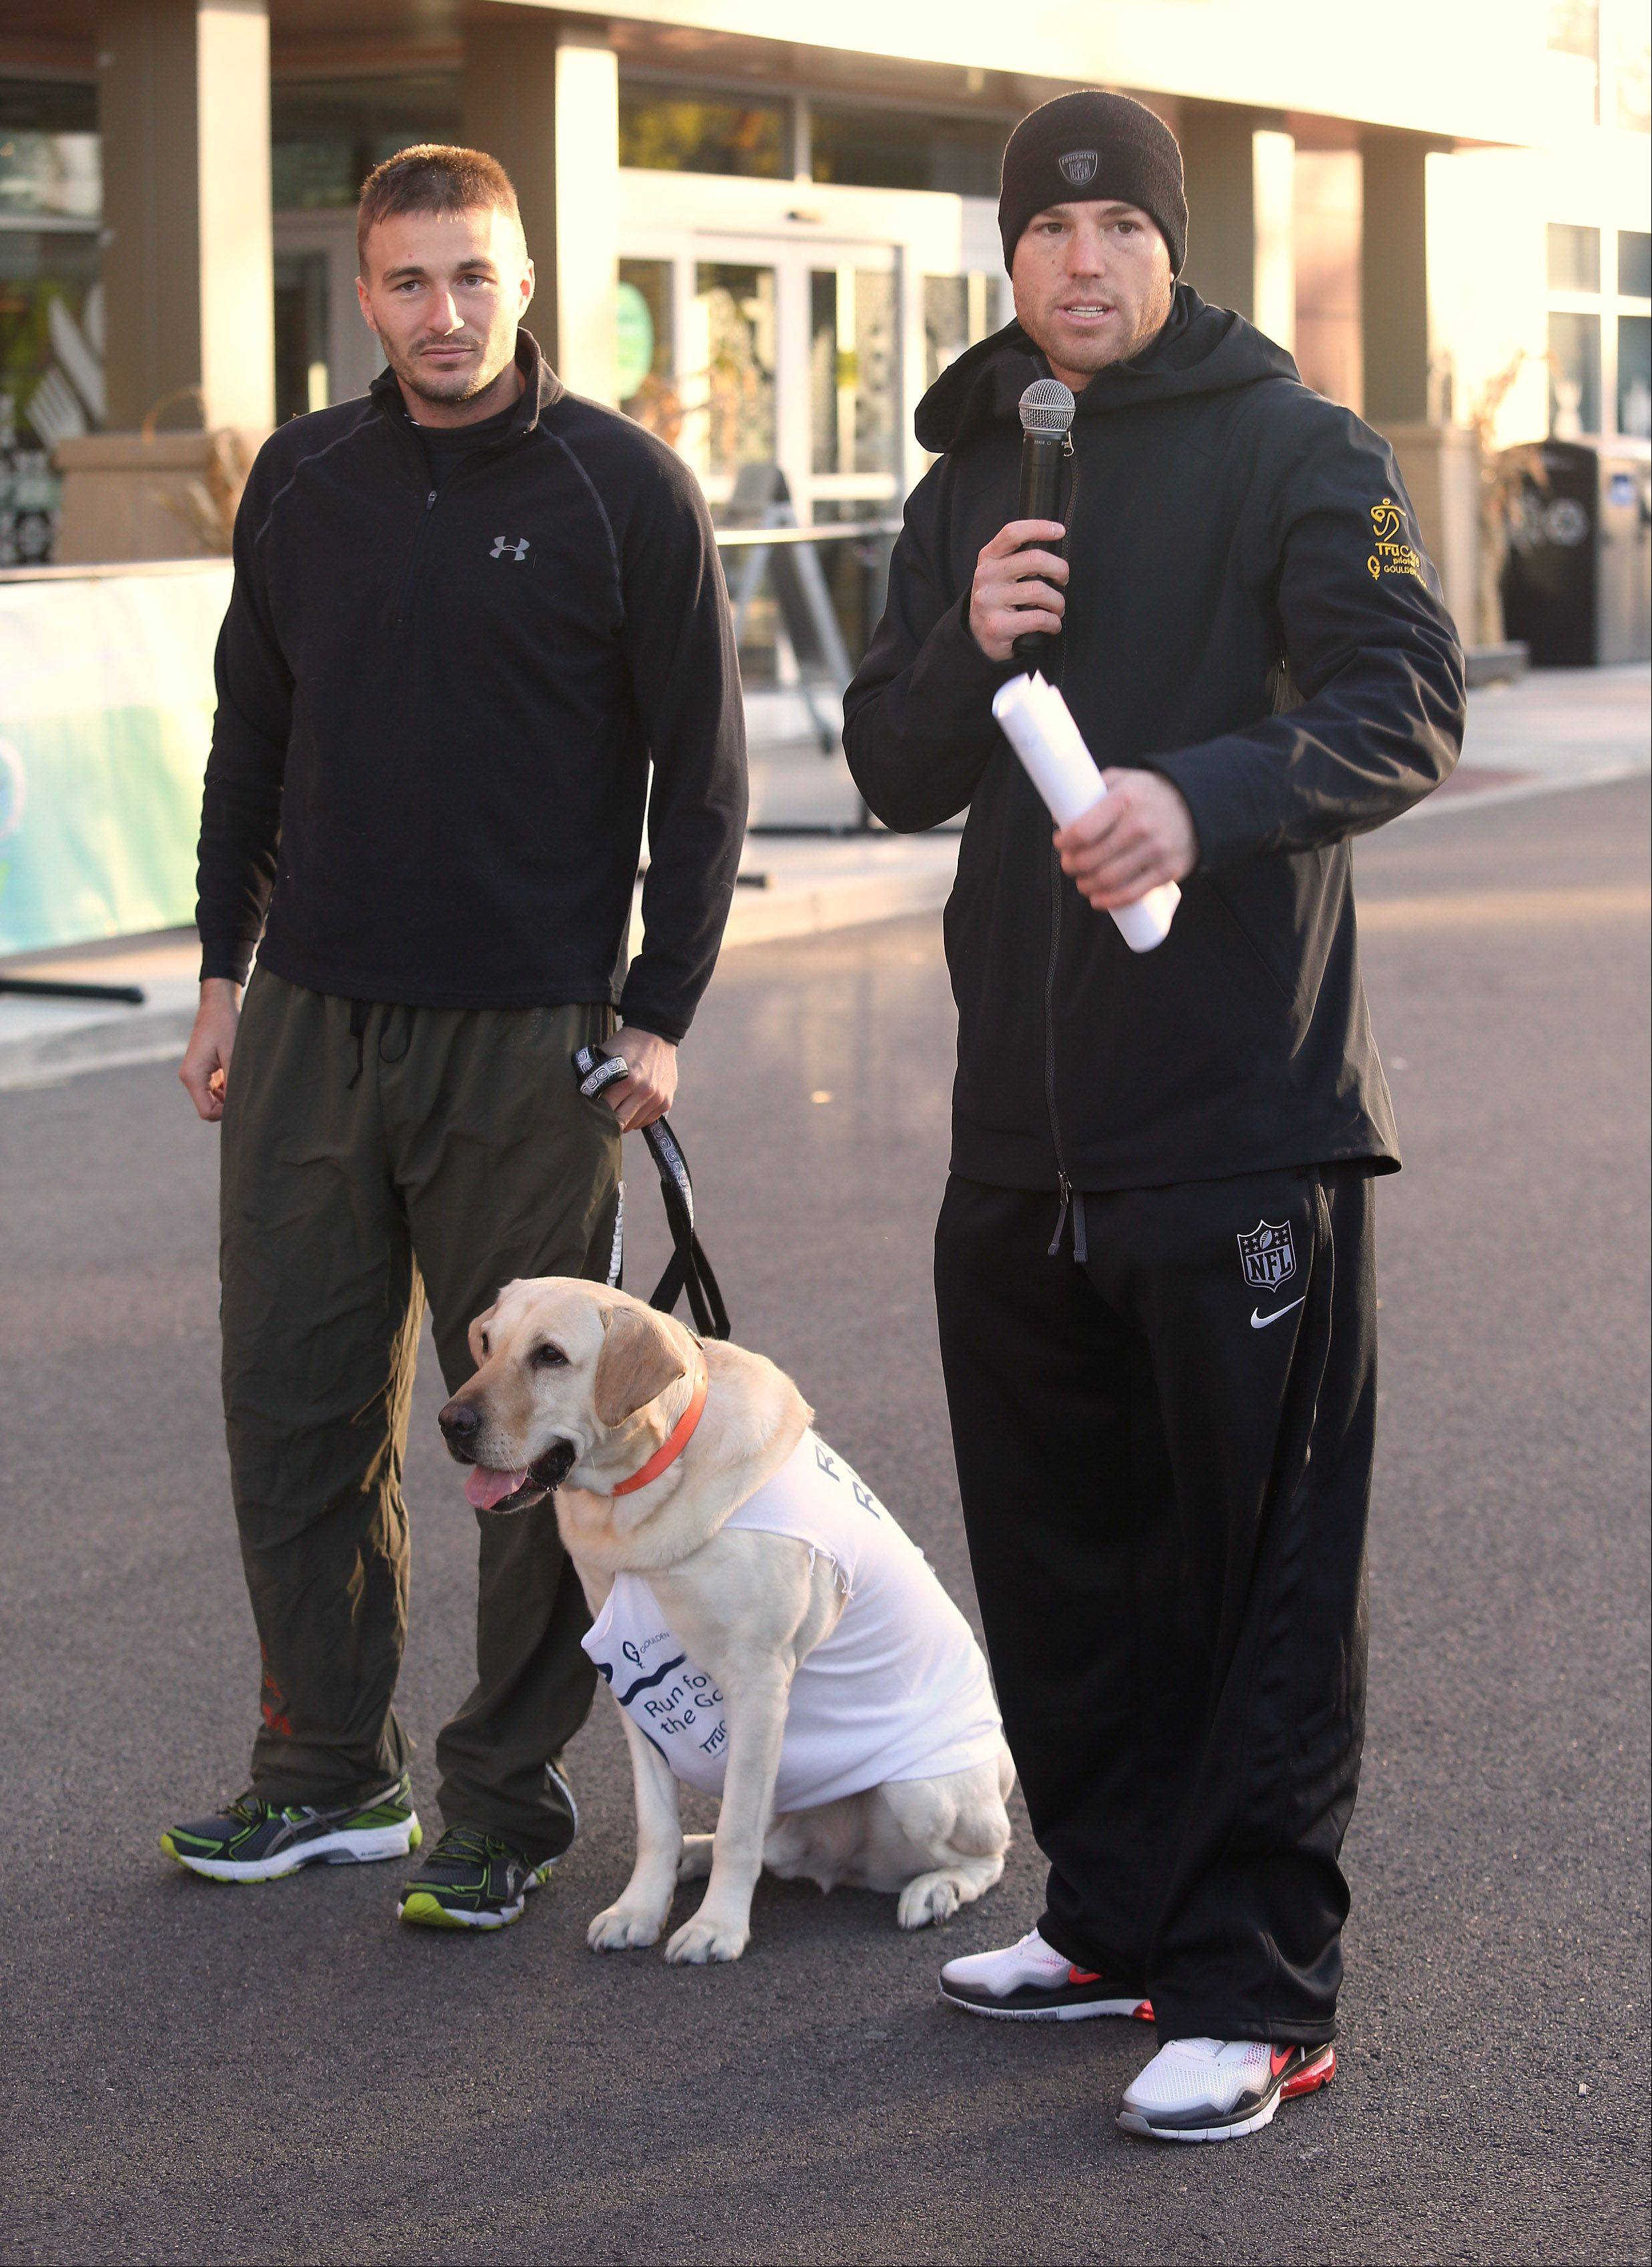 Chicago Bears kicker Robbie Gould introduces former Marine Tim Monsen and his dog Chance on Sunday during the Run for the Gould 5K and Kids Dash in Kildeer. Gould and TruCore Pilates sponsored the run to provide funds to the Goulden Touch charity that donates money to wounded soldier organizations, food banks, cancer research and other causes.